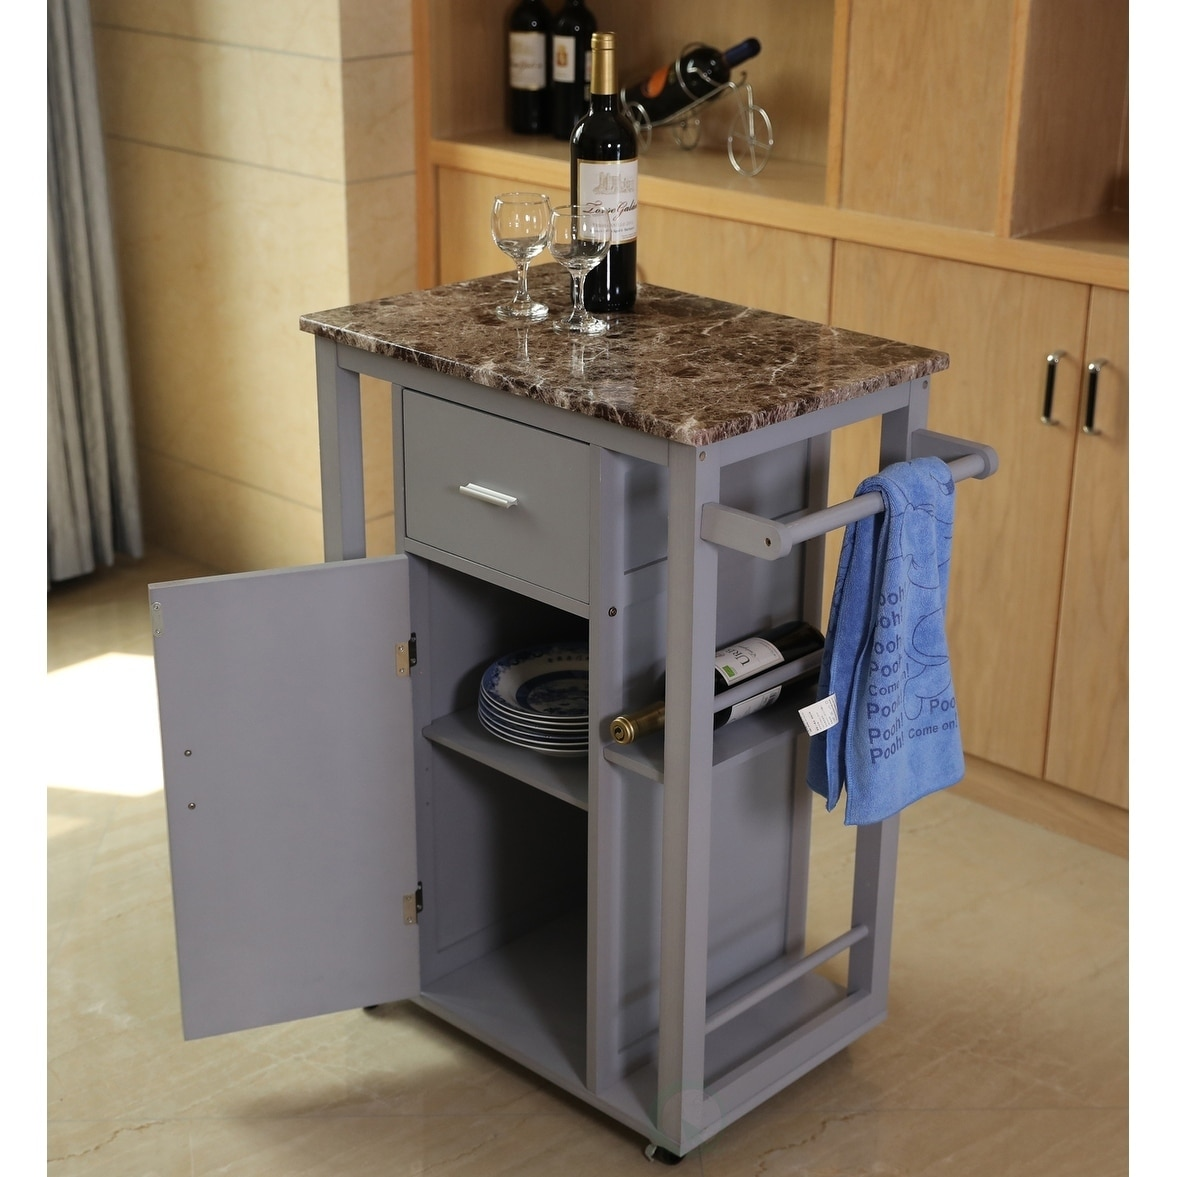 Wooden Kitchen Island on Wheels, Heavy Duty Rolling Casters - Free Shipping  Today - Overstock.com - 24132002